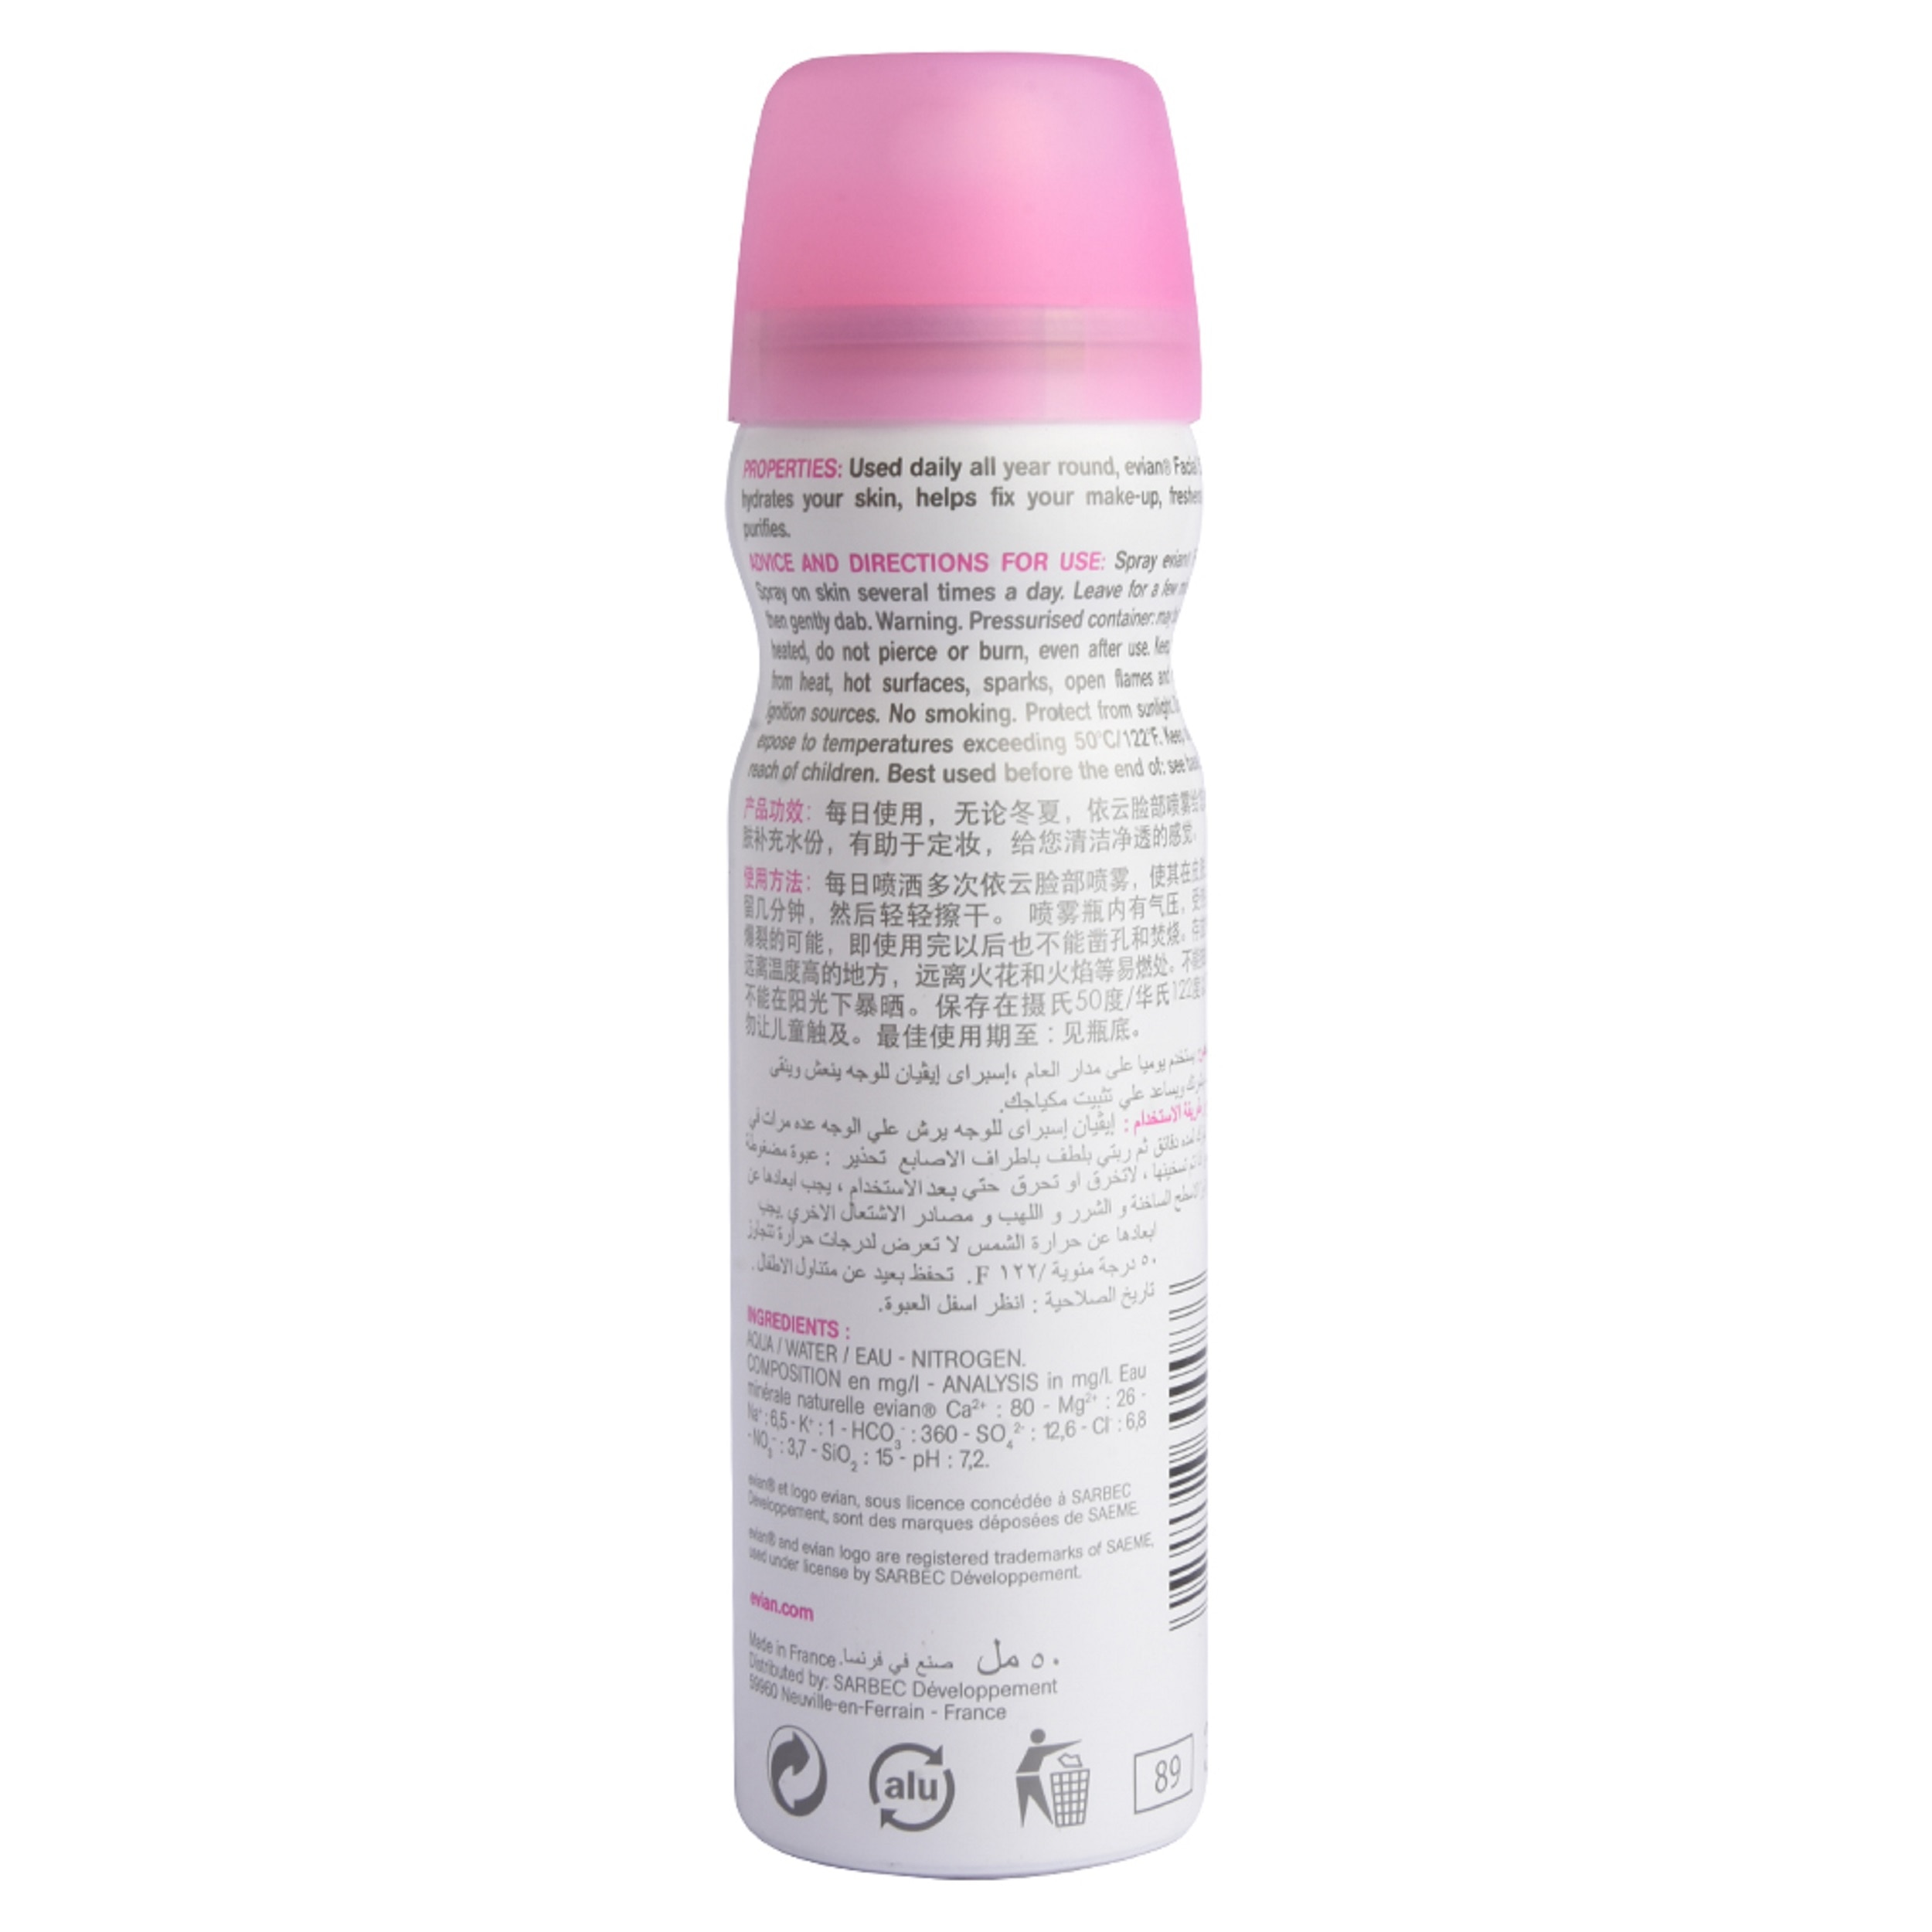 EVIANBrumisateur Small 50ml,Facial MistFree (1) Watsons Dermaction Plus Antiacne St20x2 for every purchase of Skin Care products